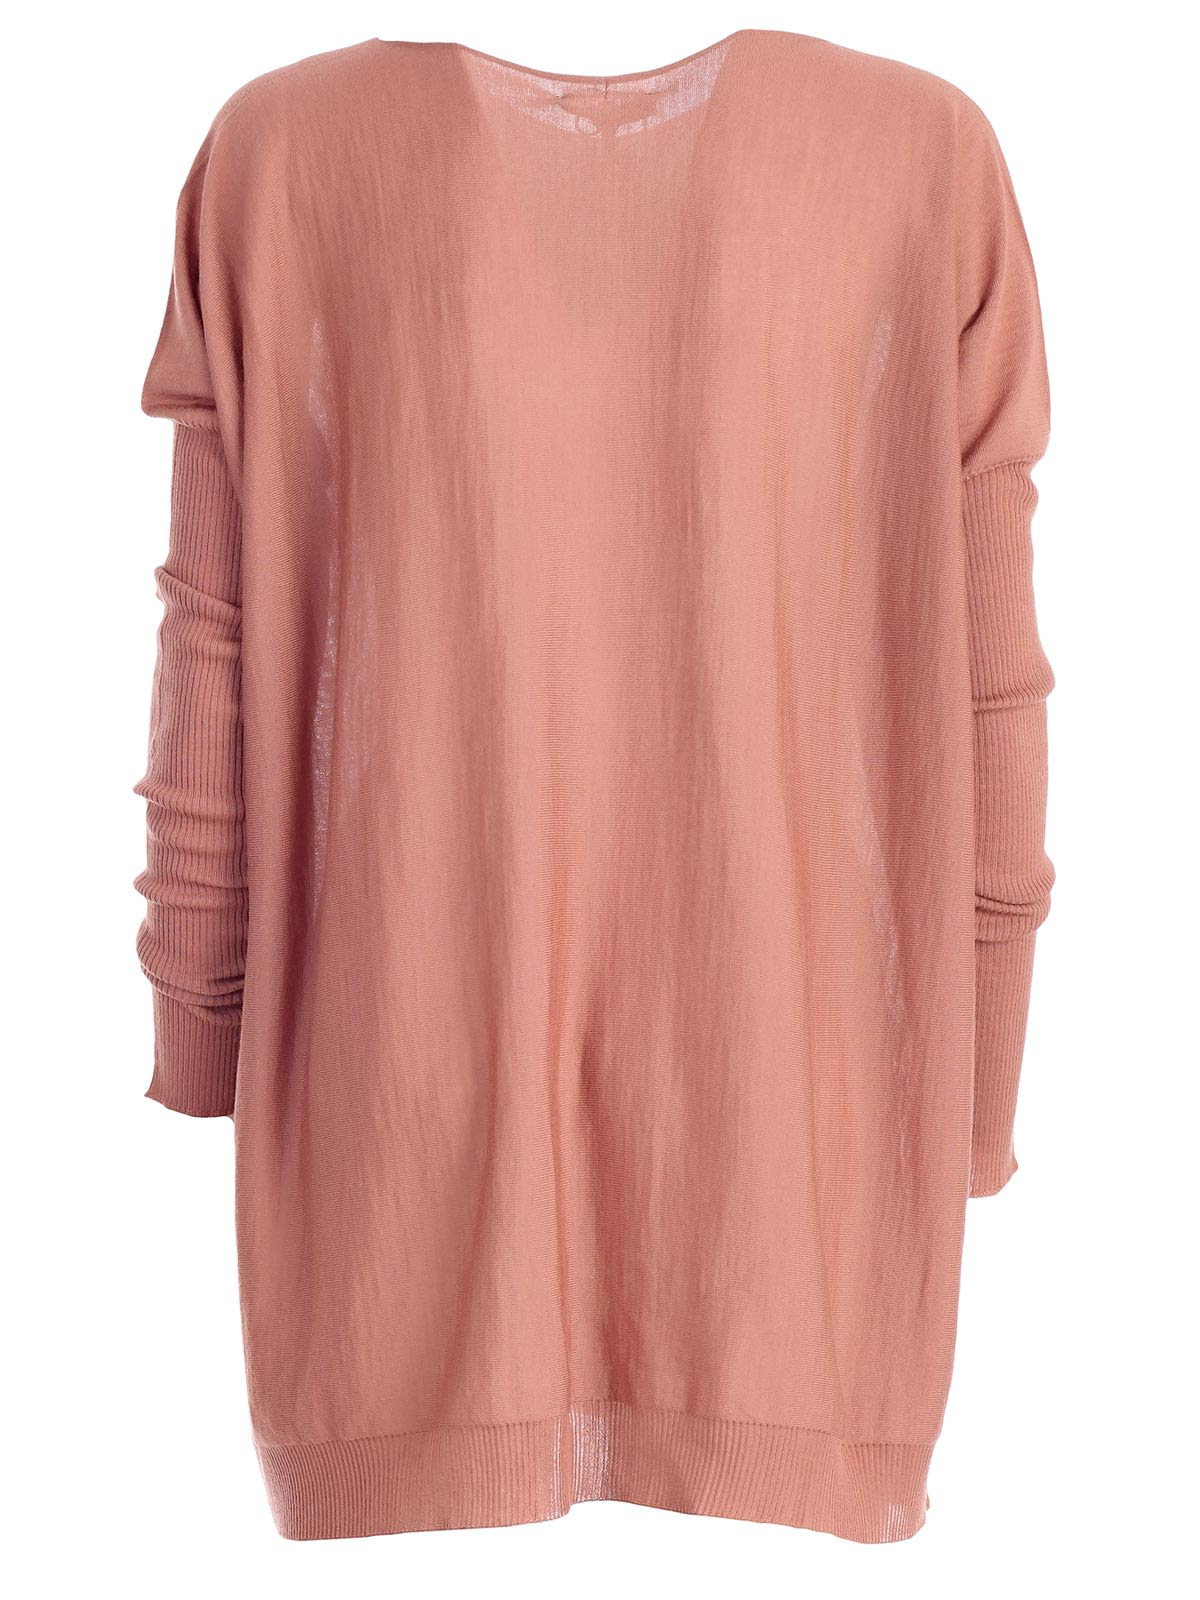 Mant 249 Mantu Boxy Knitted Top Rosa Scuro 10651672 Italist